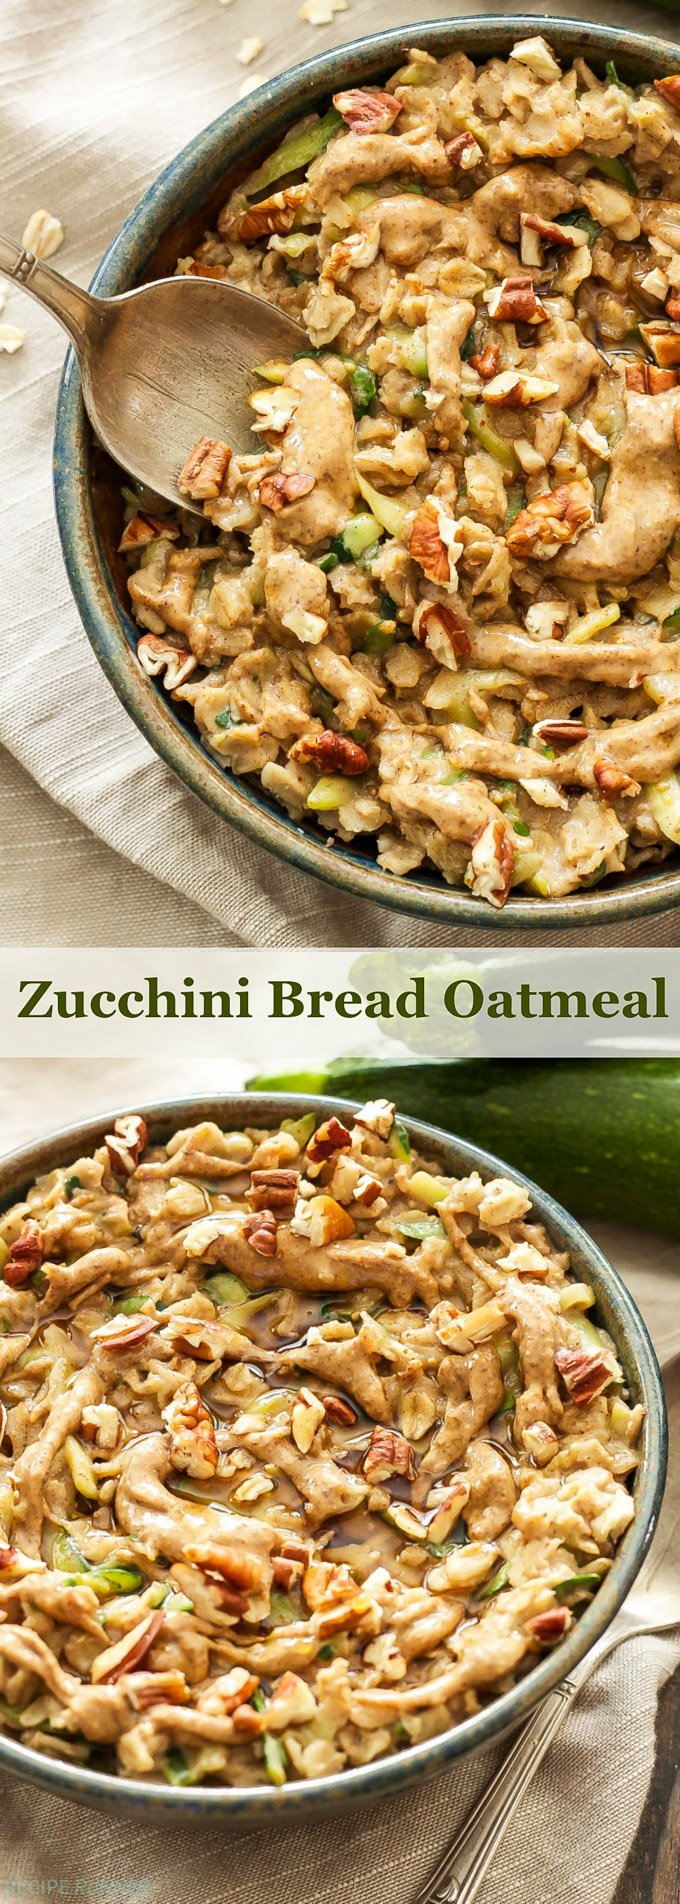 Zucchini Bread Oatmeal | Treat yourself to a bowl of this Zucchini Bread Oatmeal and get all the flavors that you would from the bread without overindulging!